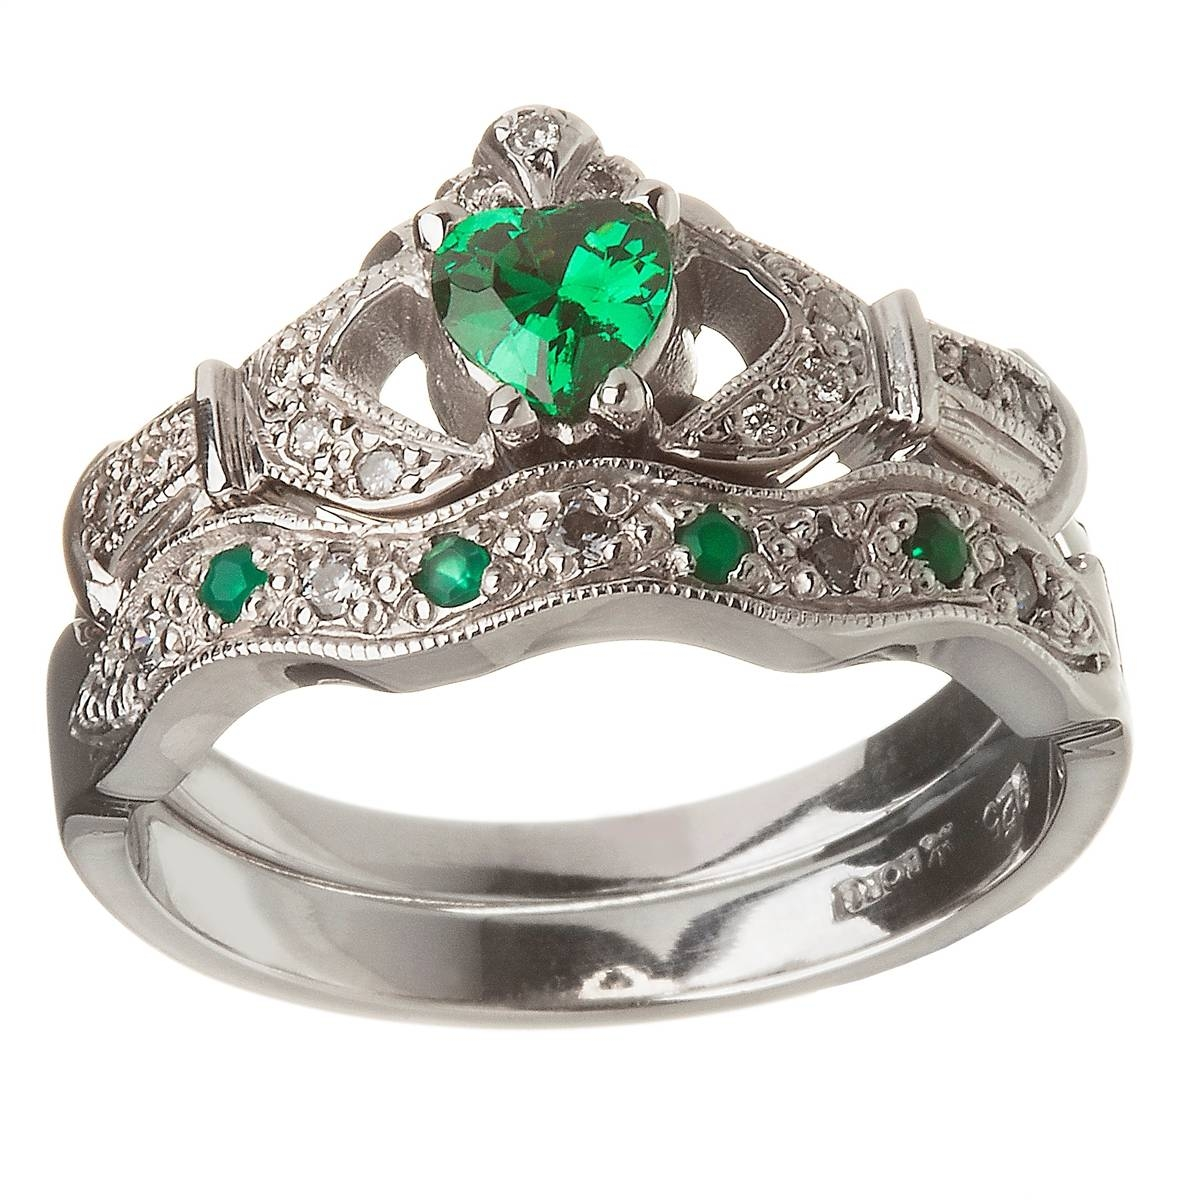 14k White Gold Emerald Set Heart Claddagh Ring & Wedding Ring Set Pertaining To Diamond Claddagh Engagement & Wedding Ring Sets (View 3 of 15)